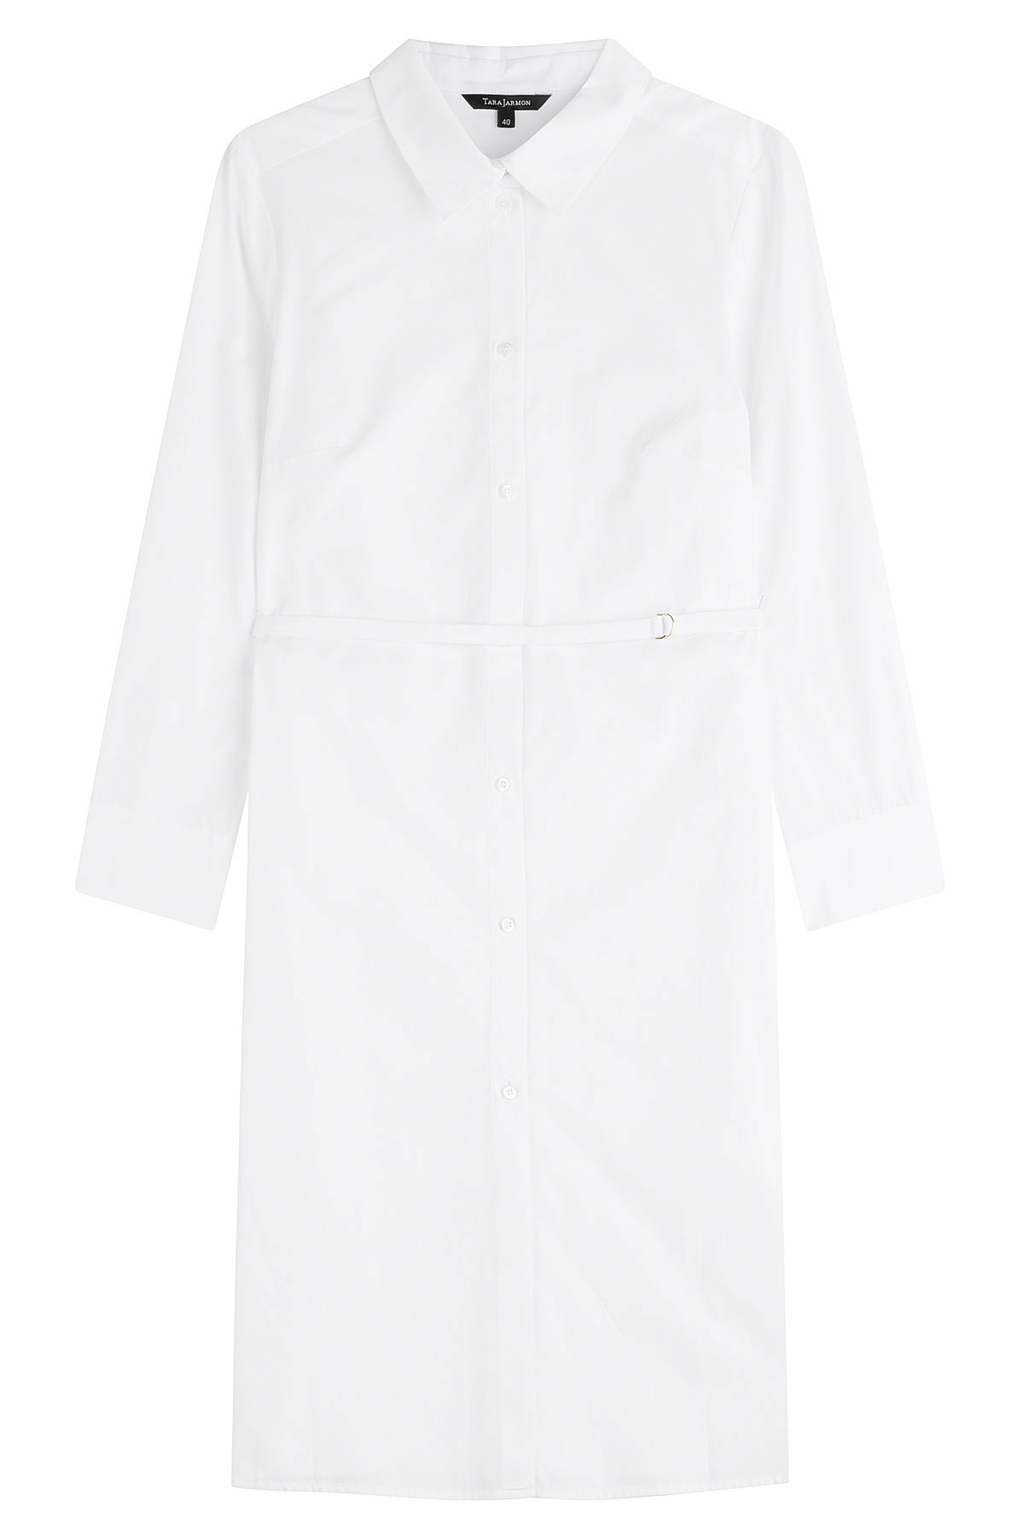 Cotton Shirt Dress White - style: shirt; neckline: shirt collar/peter pan/zip with opening; pattern: plain; waist detail: belted waist/tie at waist/drawstring; predominant colour: white; occasions: casual; length: just above the knee; fit: body skimming; fibres: cotton - 100%; sleeve length: long sleeve; sleeve style: standard; texture group: cotton feel fabrics; pattern type: fabric; season: s/s 2016